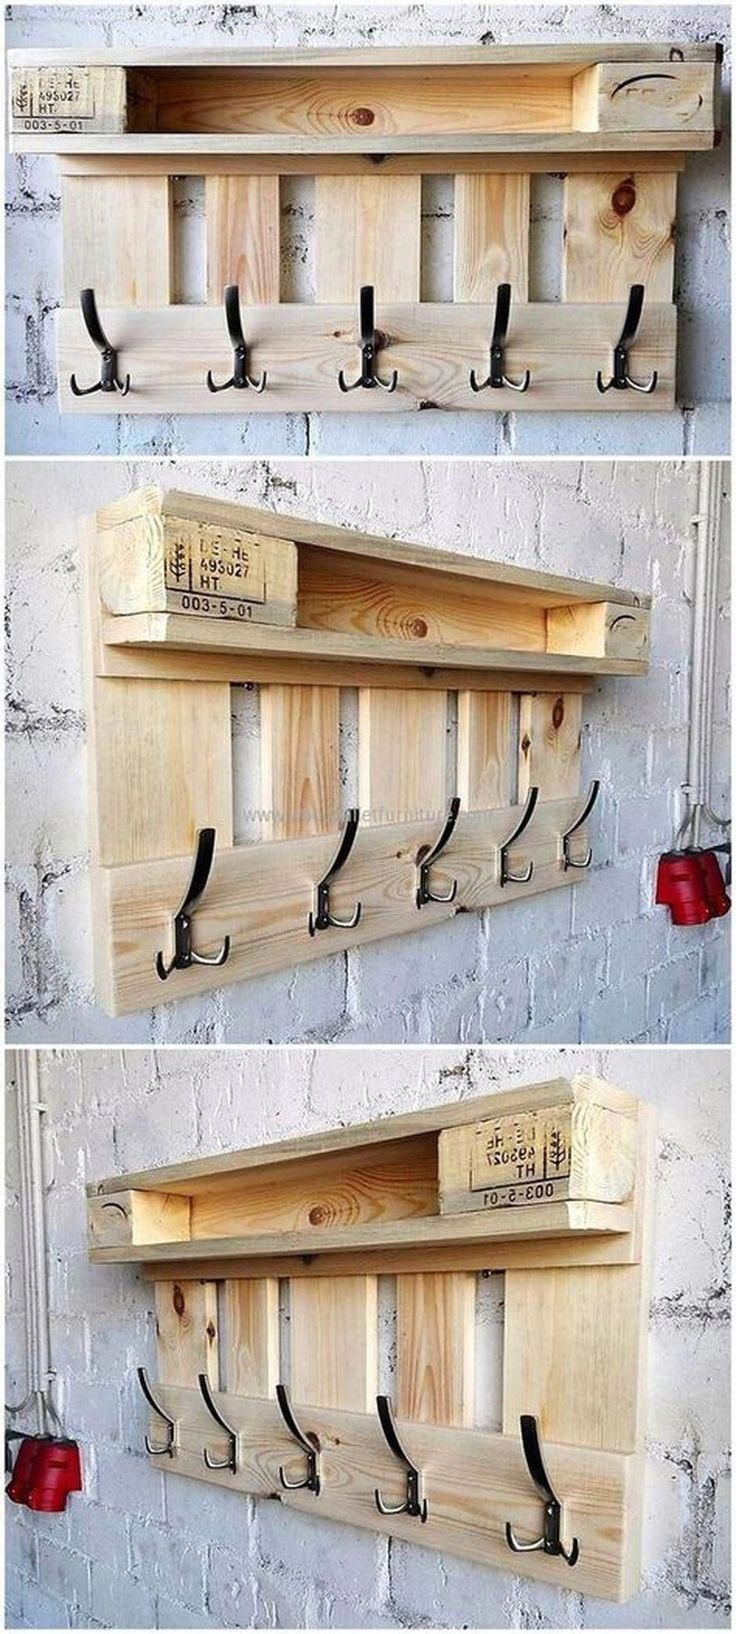 Wood Pallet Projects Easy Woodworking Projects Wood Diy Wood Pallet Furniture Diy Woodworking Projects That Sell Wood Projects That Sell Carpentry Projects